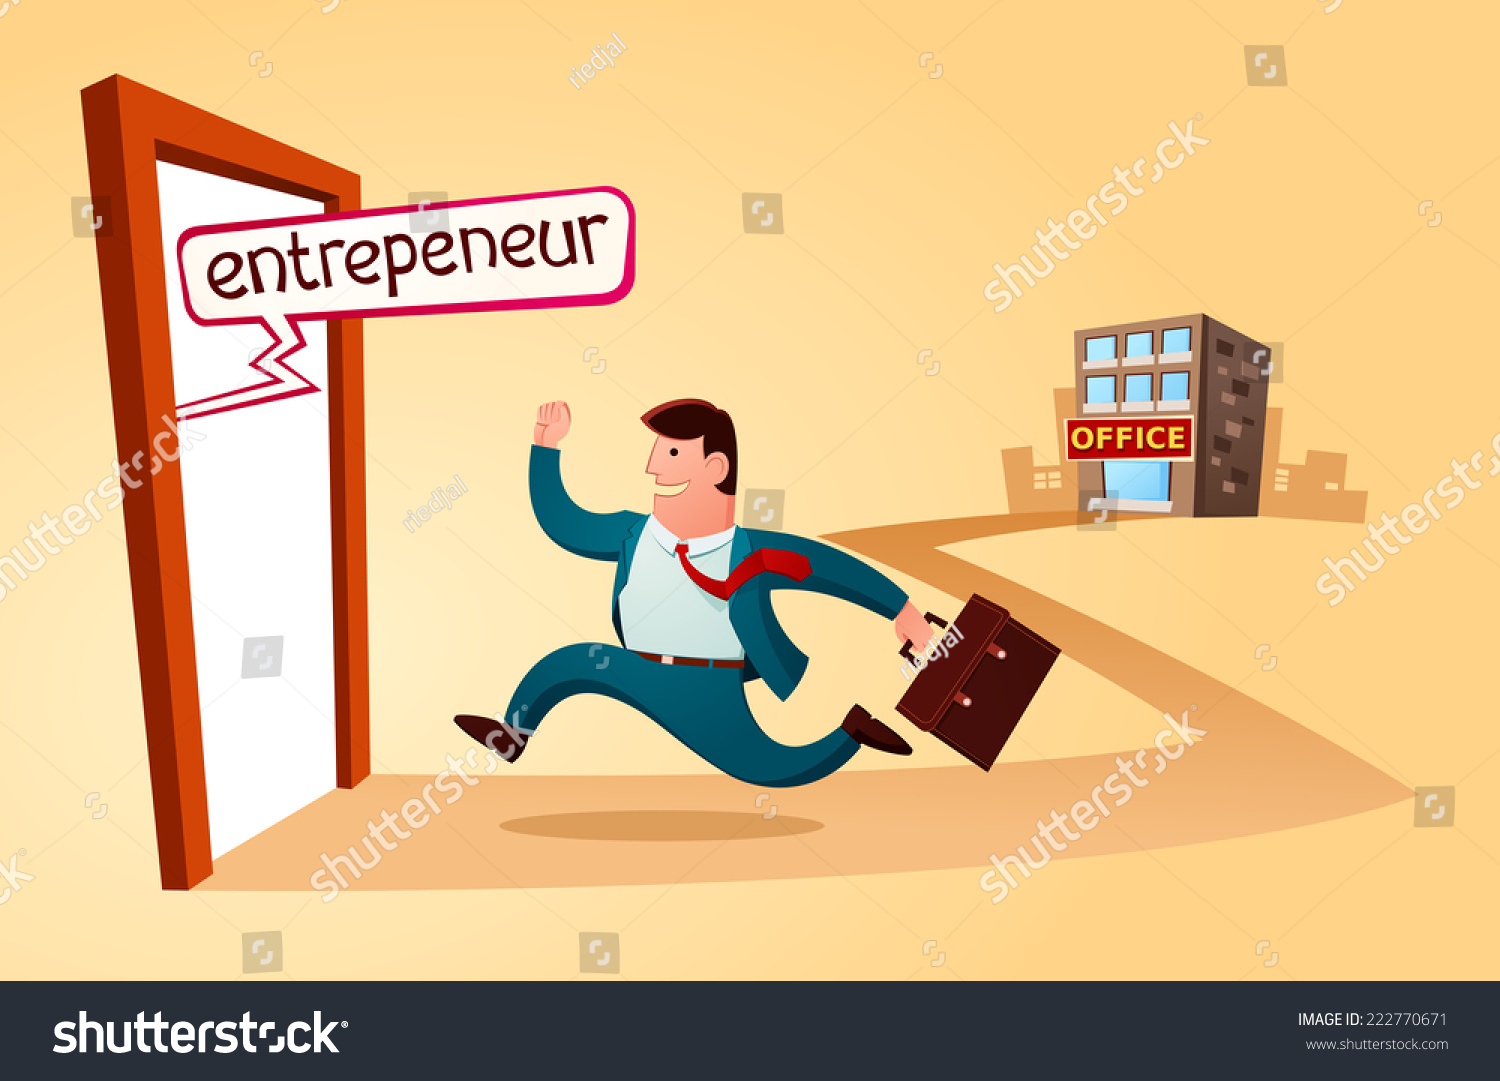 resign old job start build business stock vector  resign from the old job and start to build business